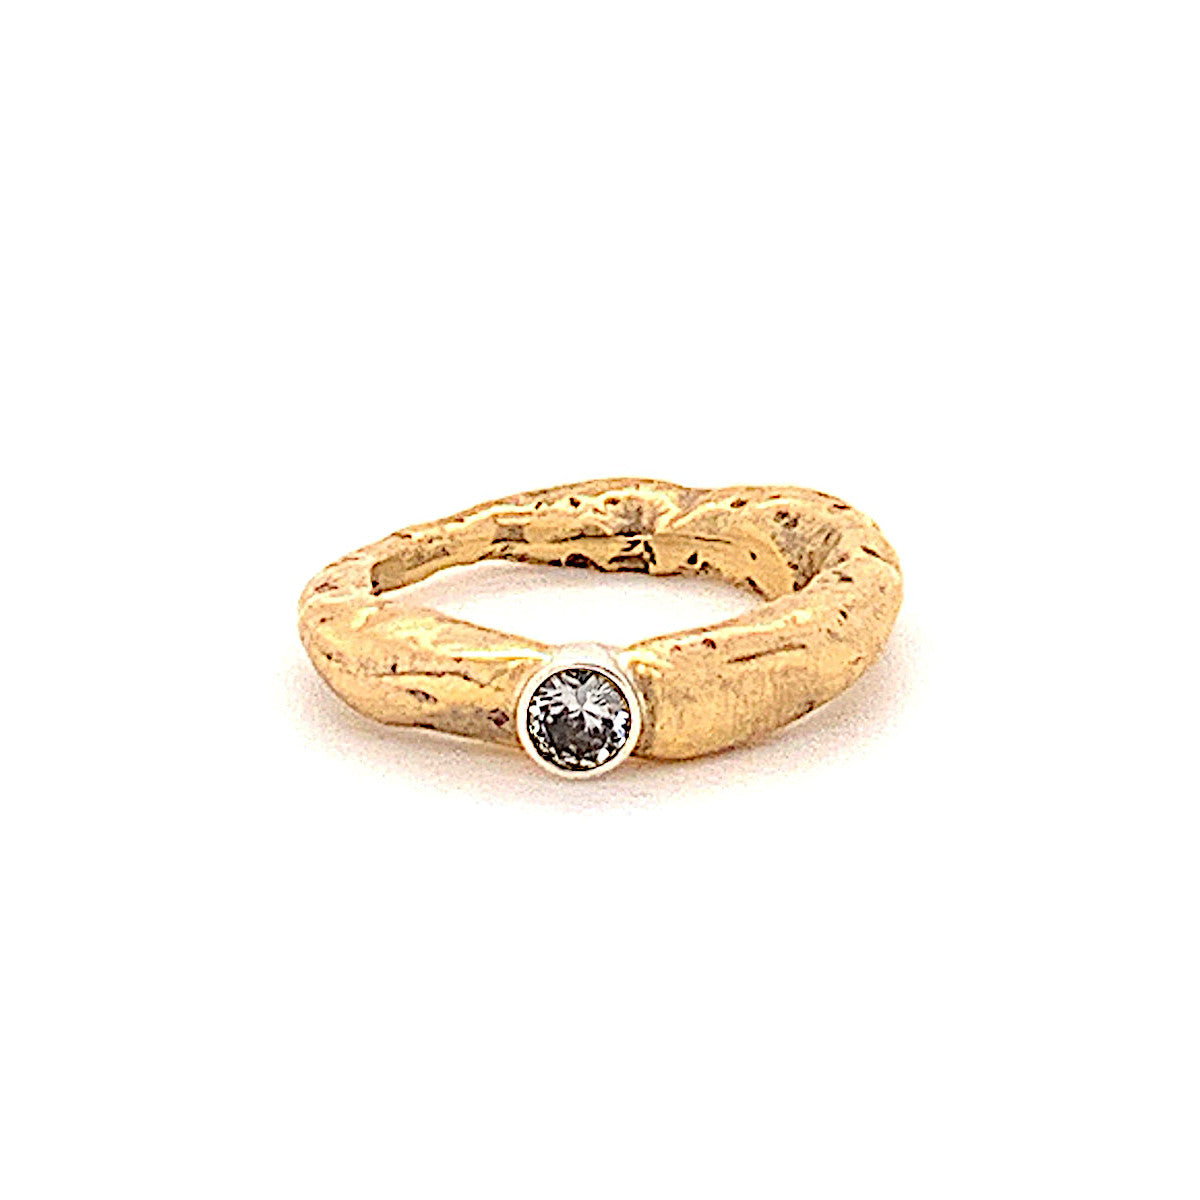 18k Gold Stone Ring with White Diamond